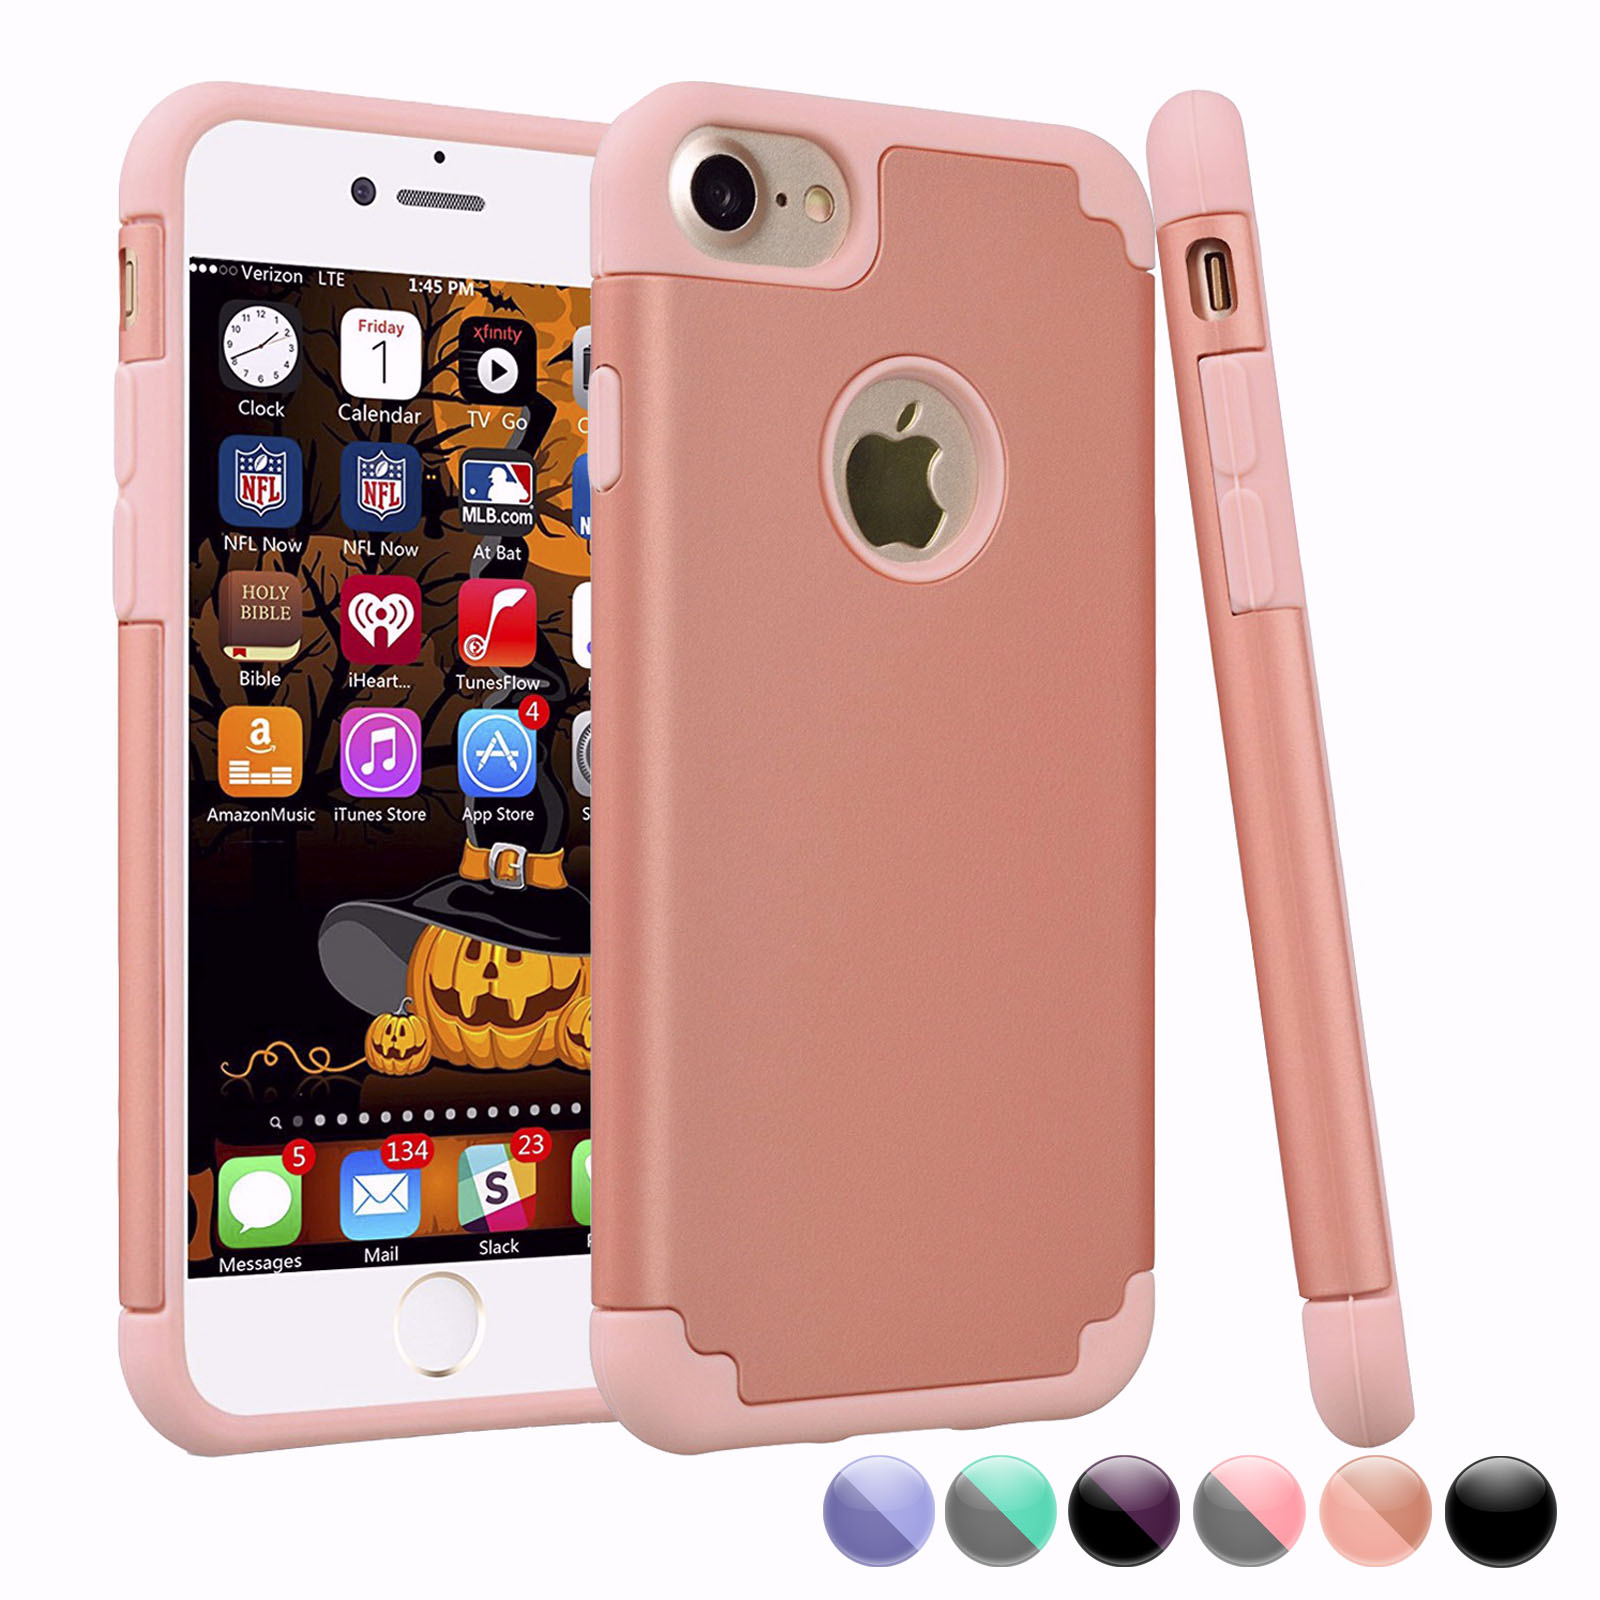 iPhone 6S Case, iPhone 6 Cute Case For Girls, Njjex [Rose Gold] Shock Absorbing Plastic Slim Thin Cover [Scratch Proof] TPU Rubber Inner Case For iPhone 6S/6 4.7 Inch